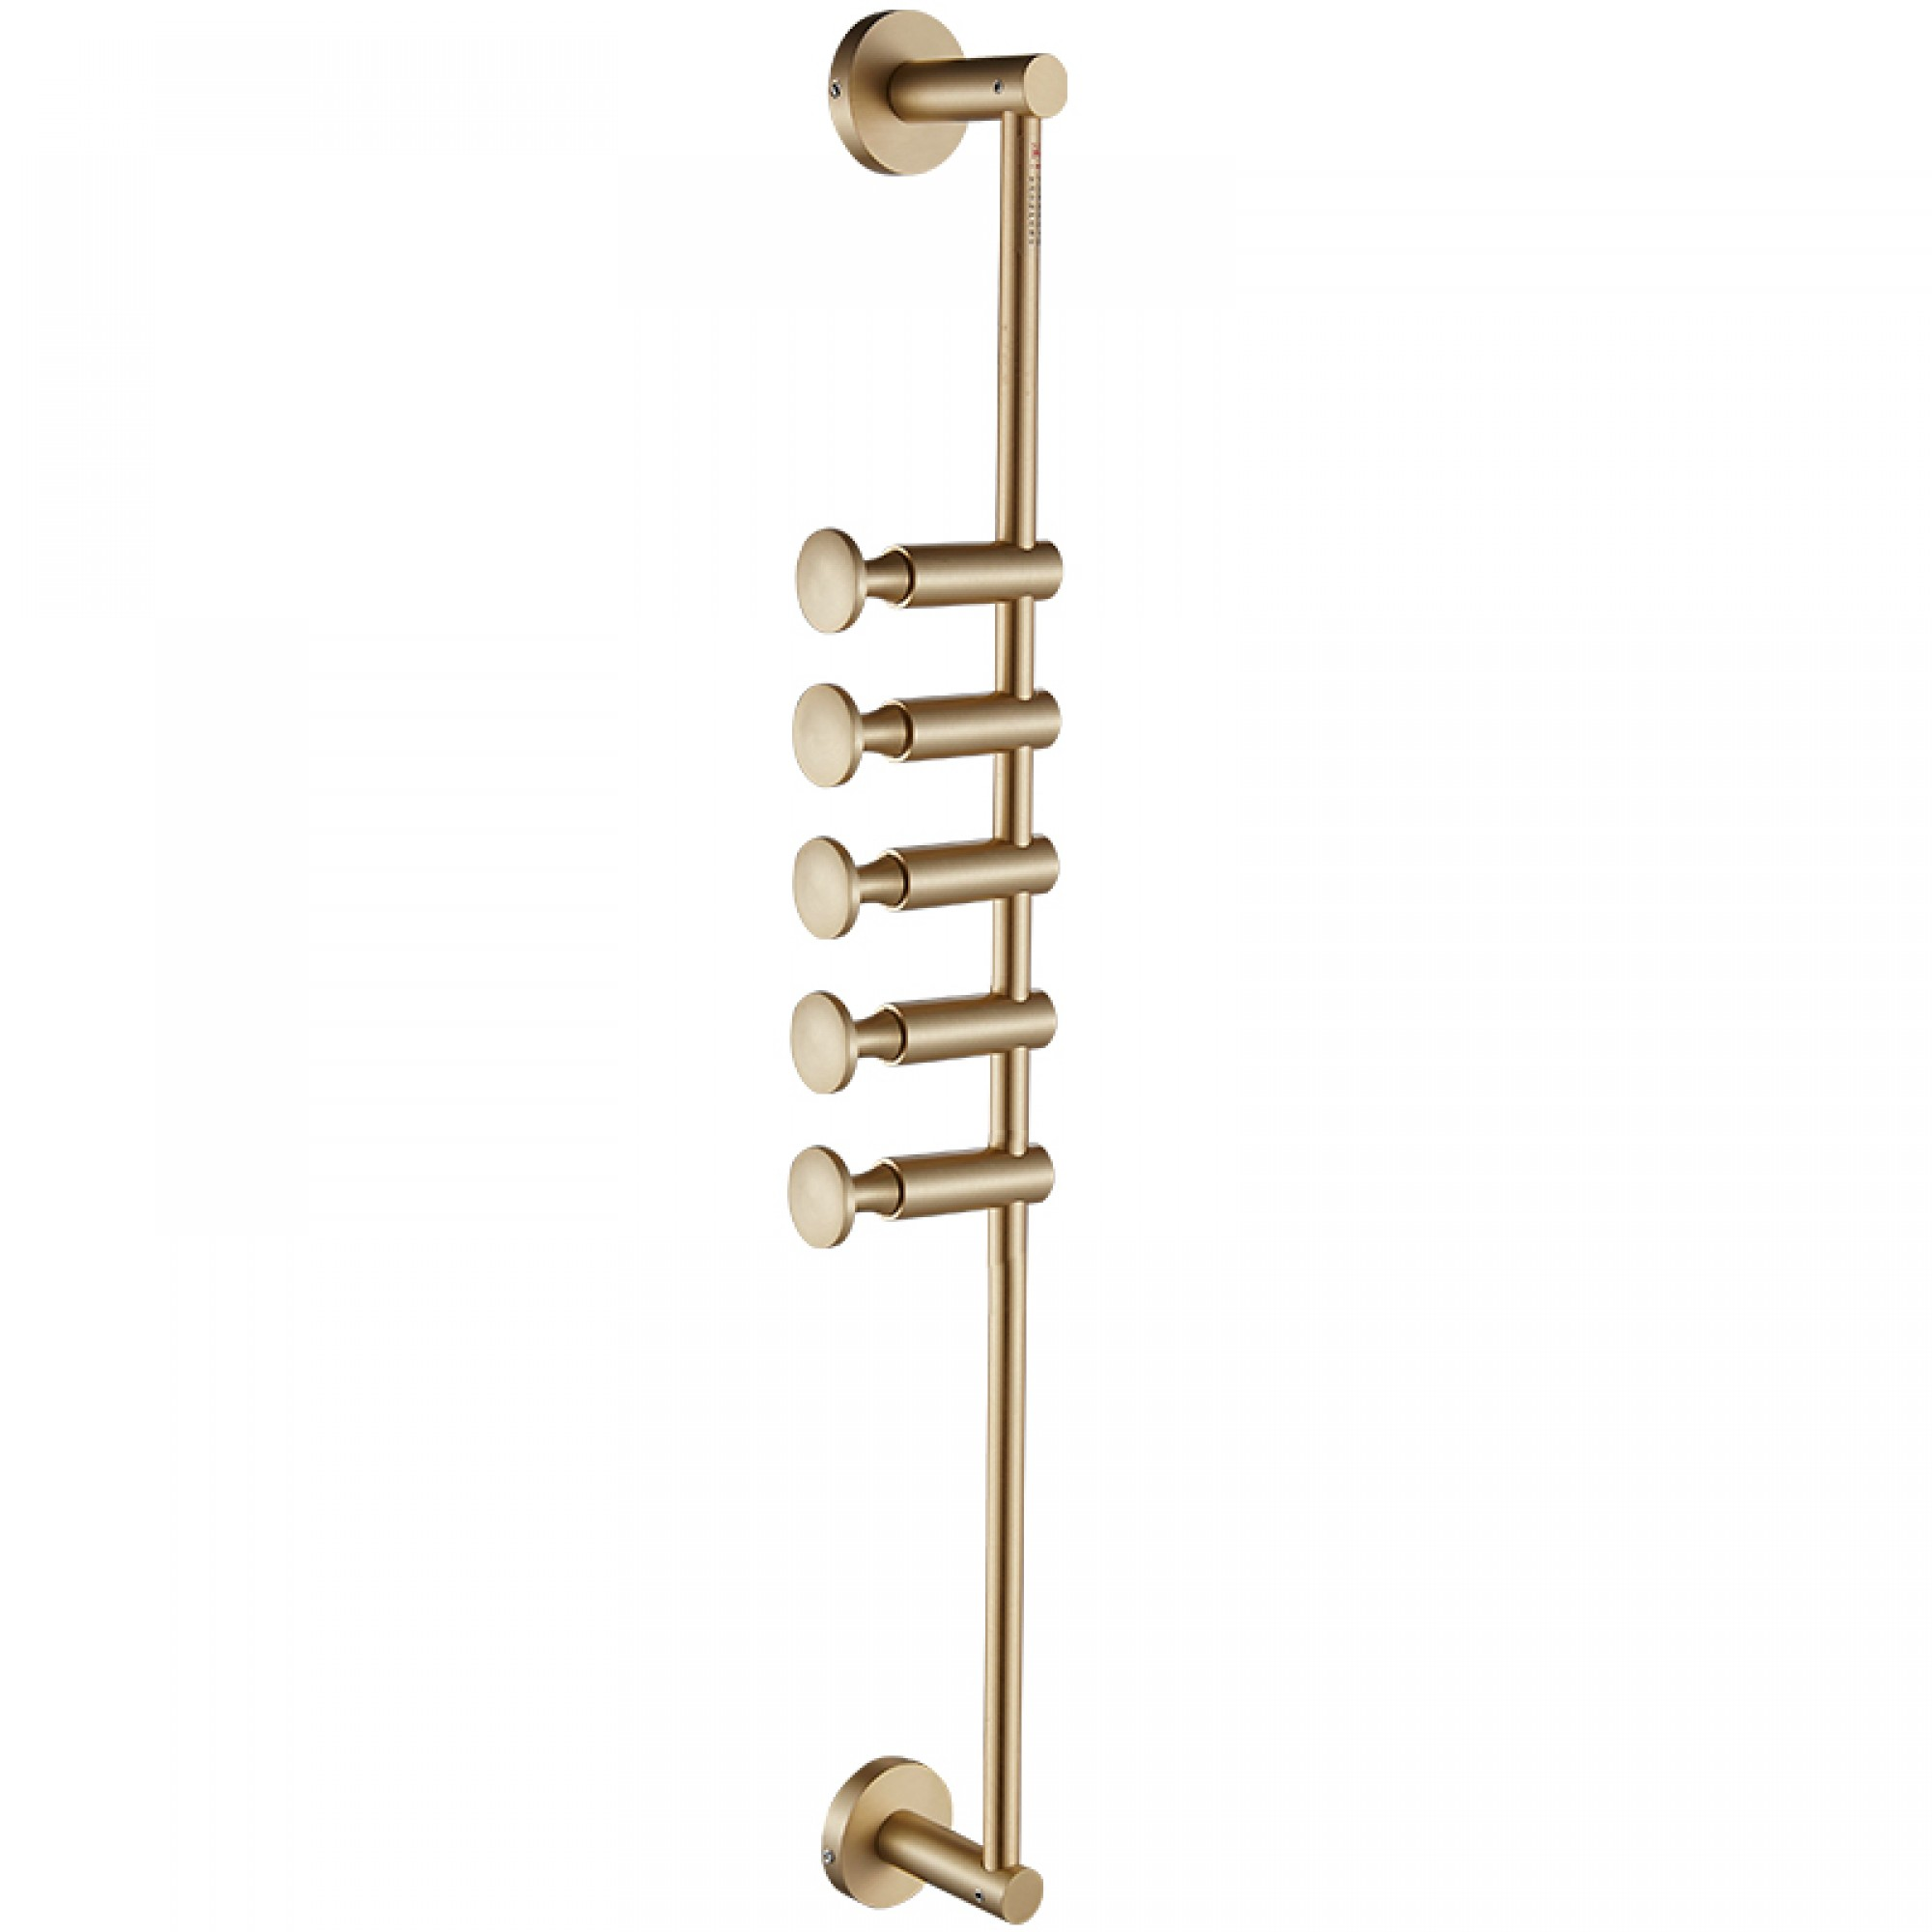 Brass clothes hanger - LUSTER